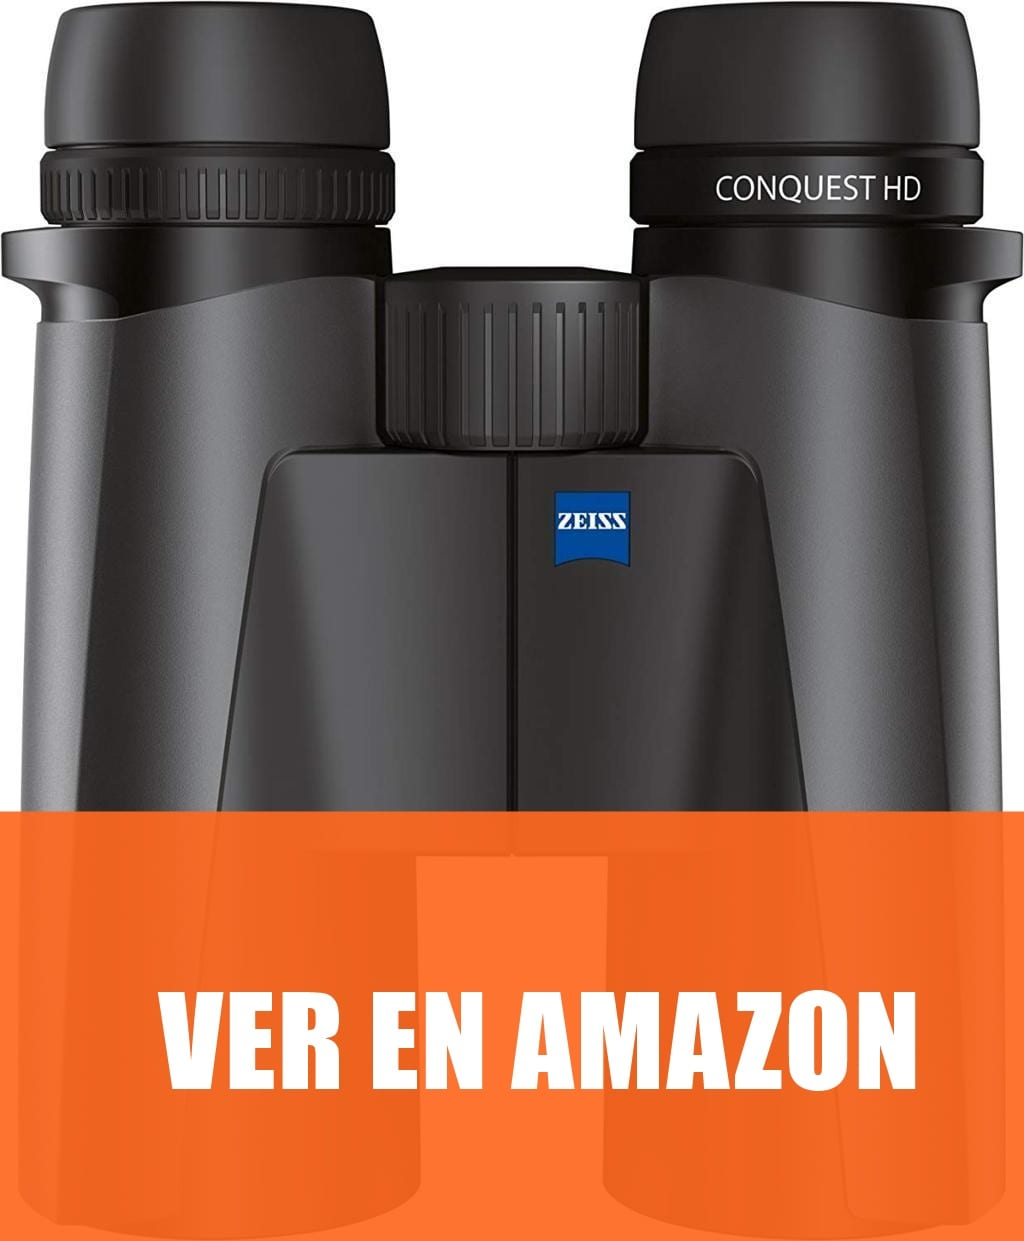 Carl Zeiss Conquest 10X42 HD - Prismáticos